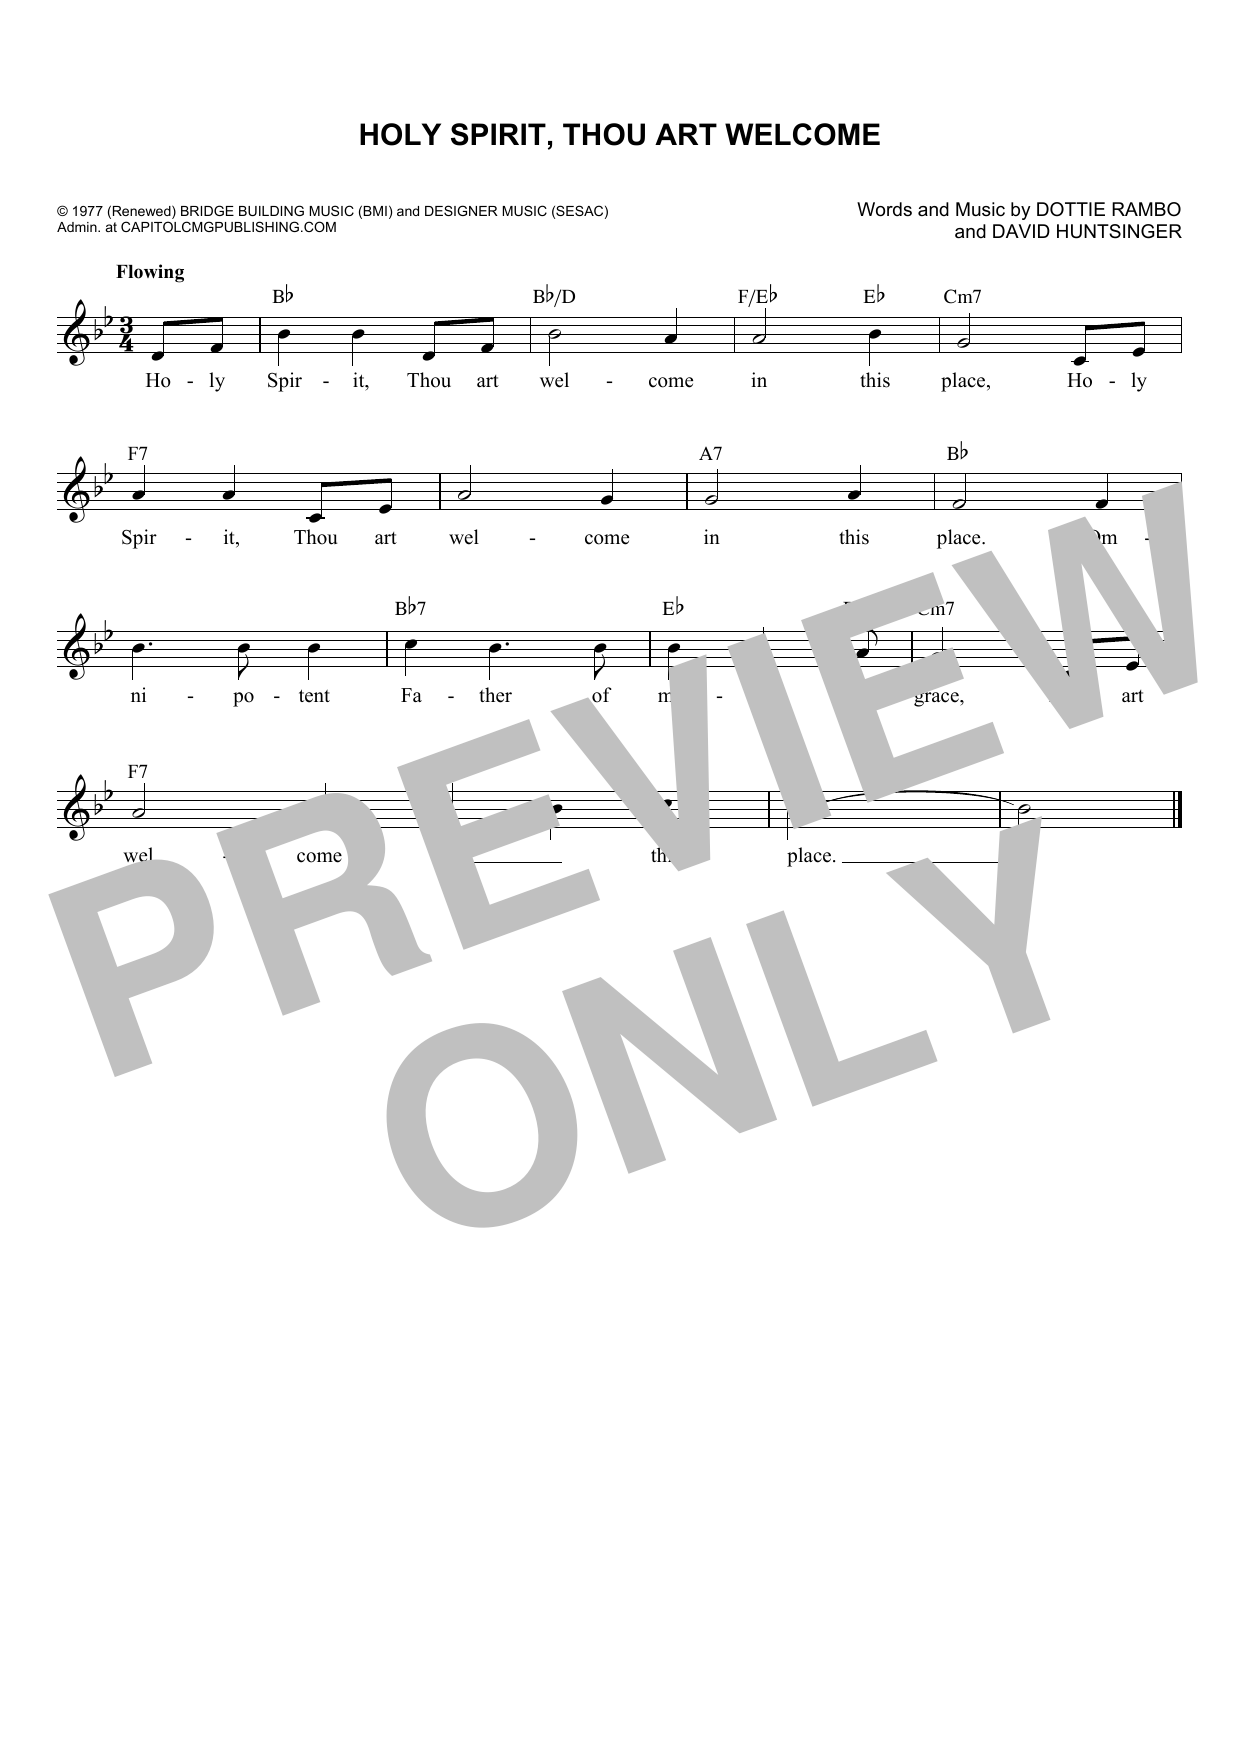 David Huntsinger Holy Spirit, Thou Art Welcome Sheet Music Notes, Chords    Download Printable Piano, Vocal & Guitar Right Hand Melody PDF Score   ...